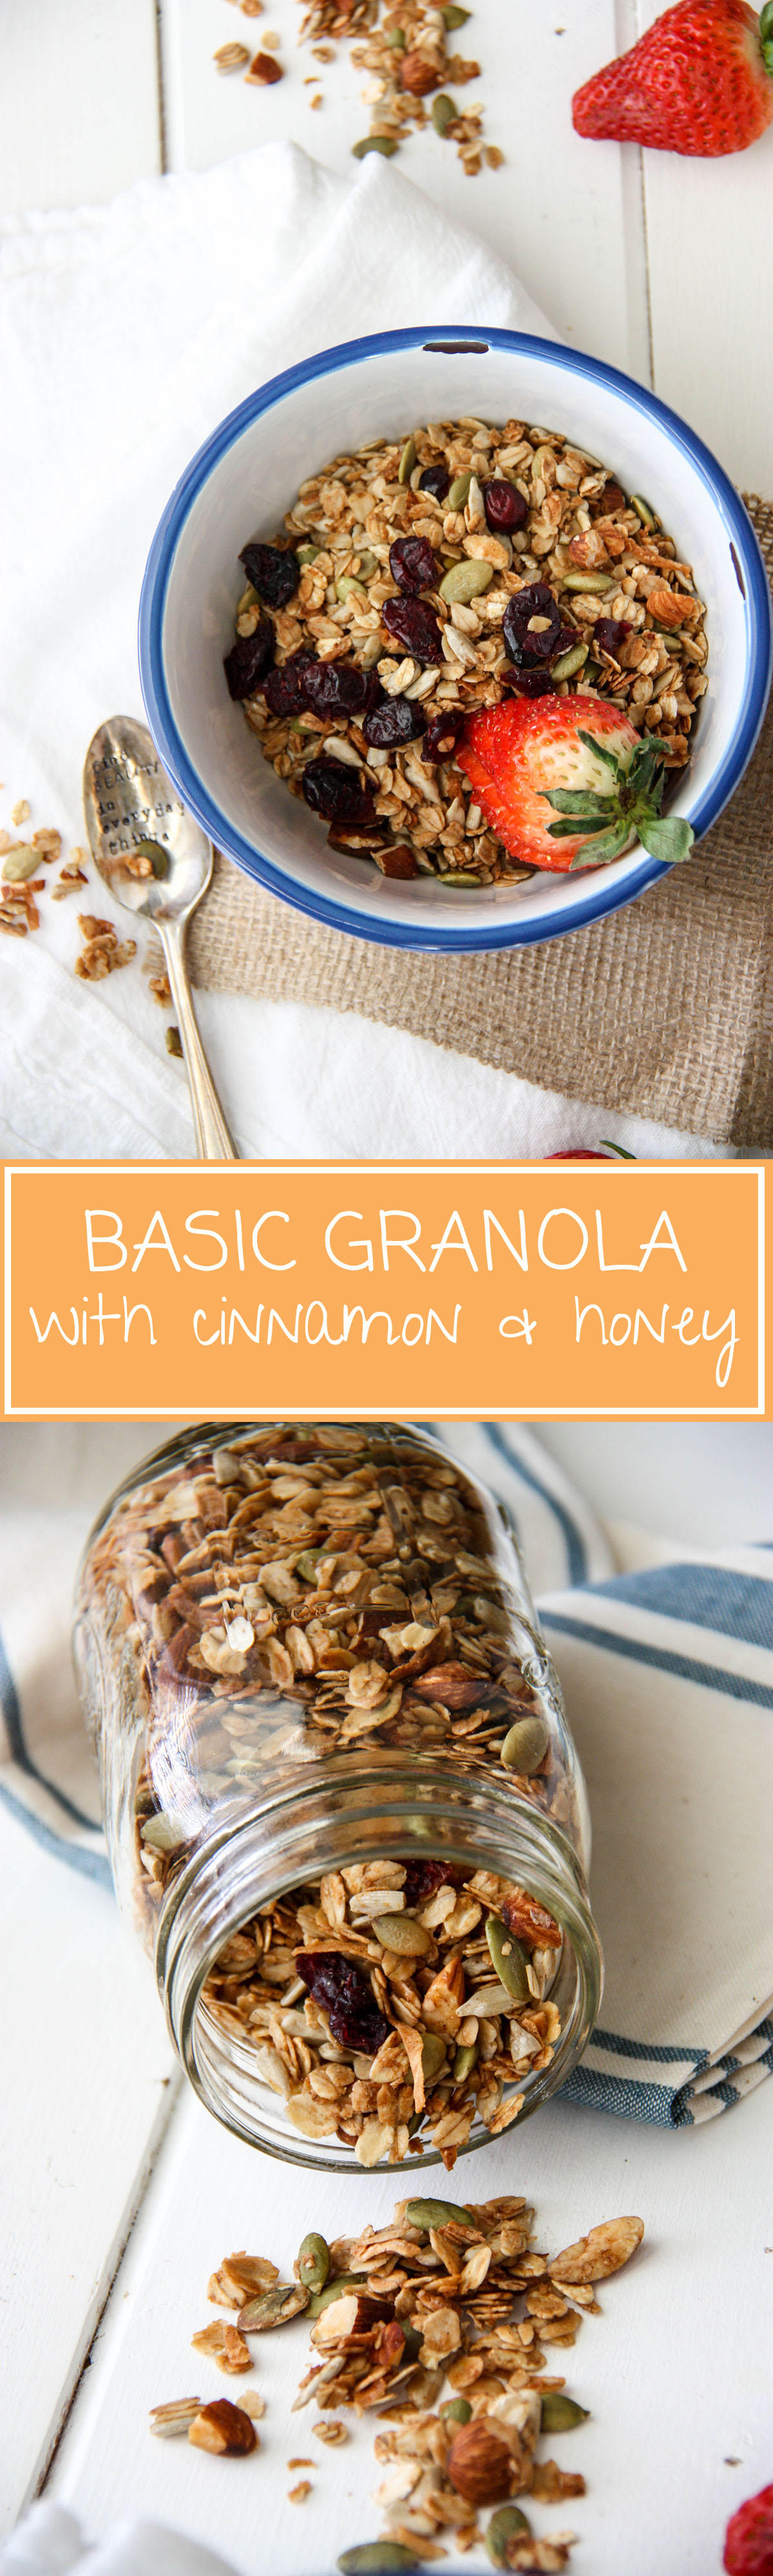 Basic Granola with Cinnamon & Honey www.thehomecookskitchen.com - try this easy, healthy breakfast for busy people